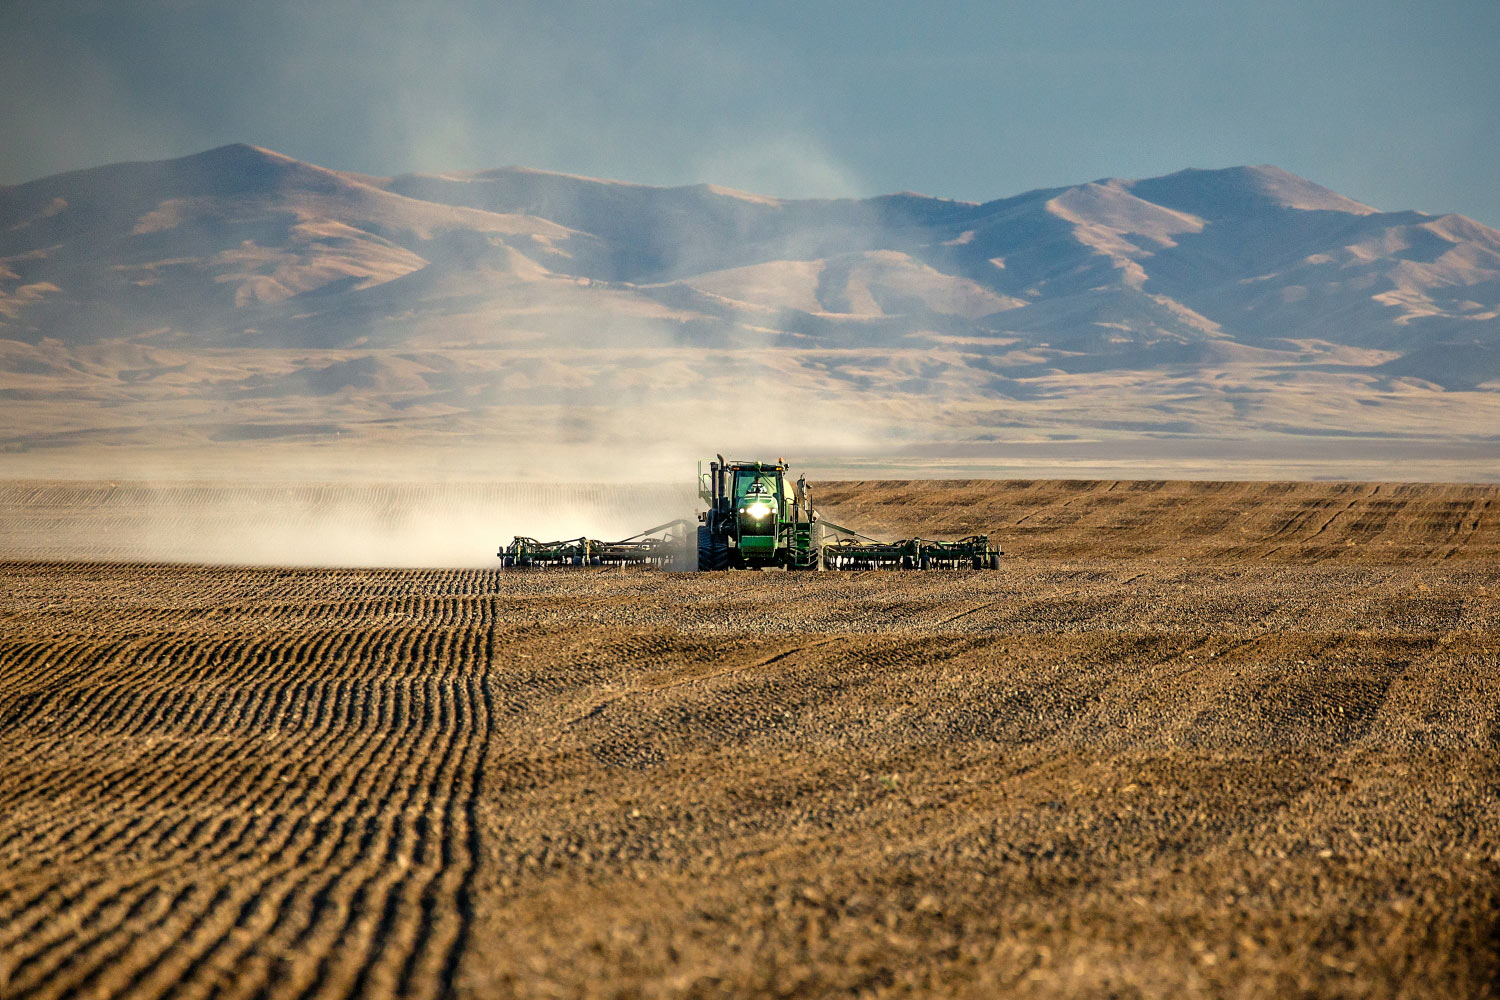 A tractor seeds wheat with mountains in the background near Chinook, Montana.   → Buy a Print   or   License Photo